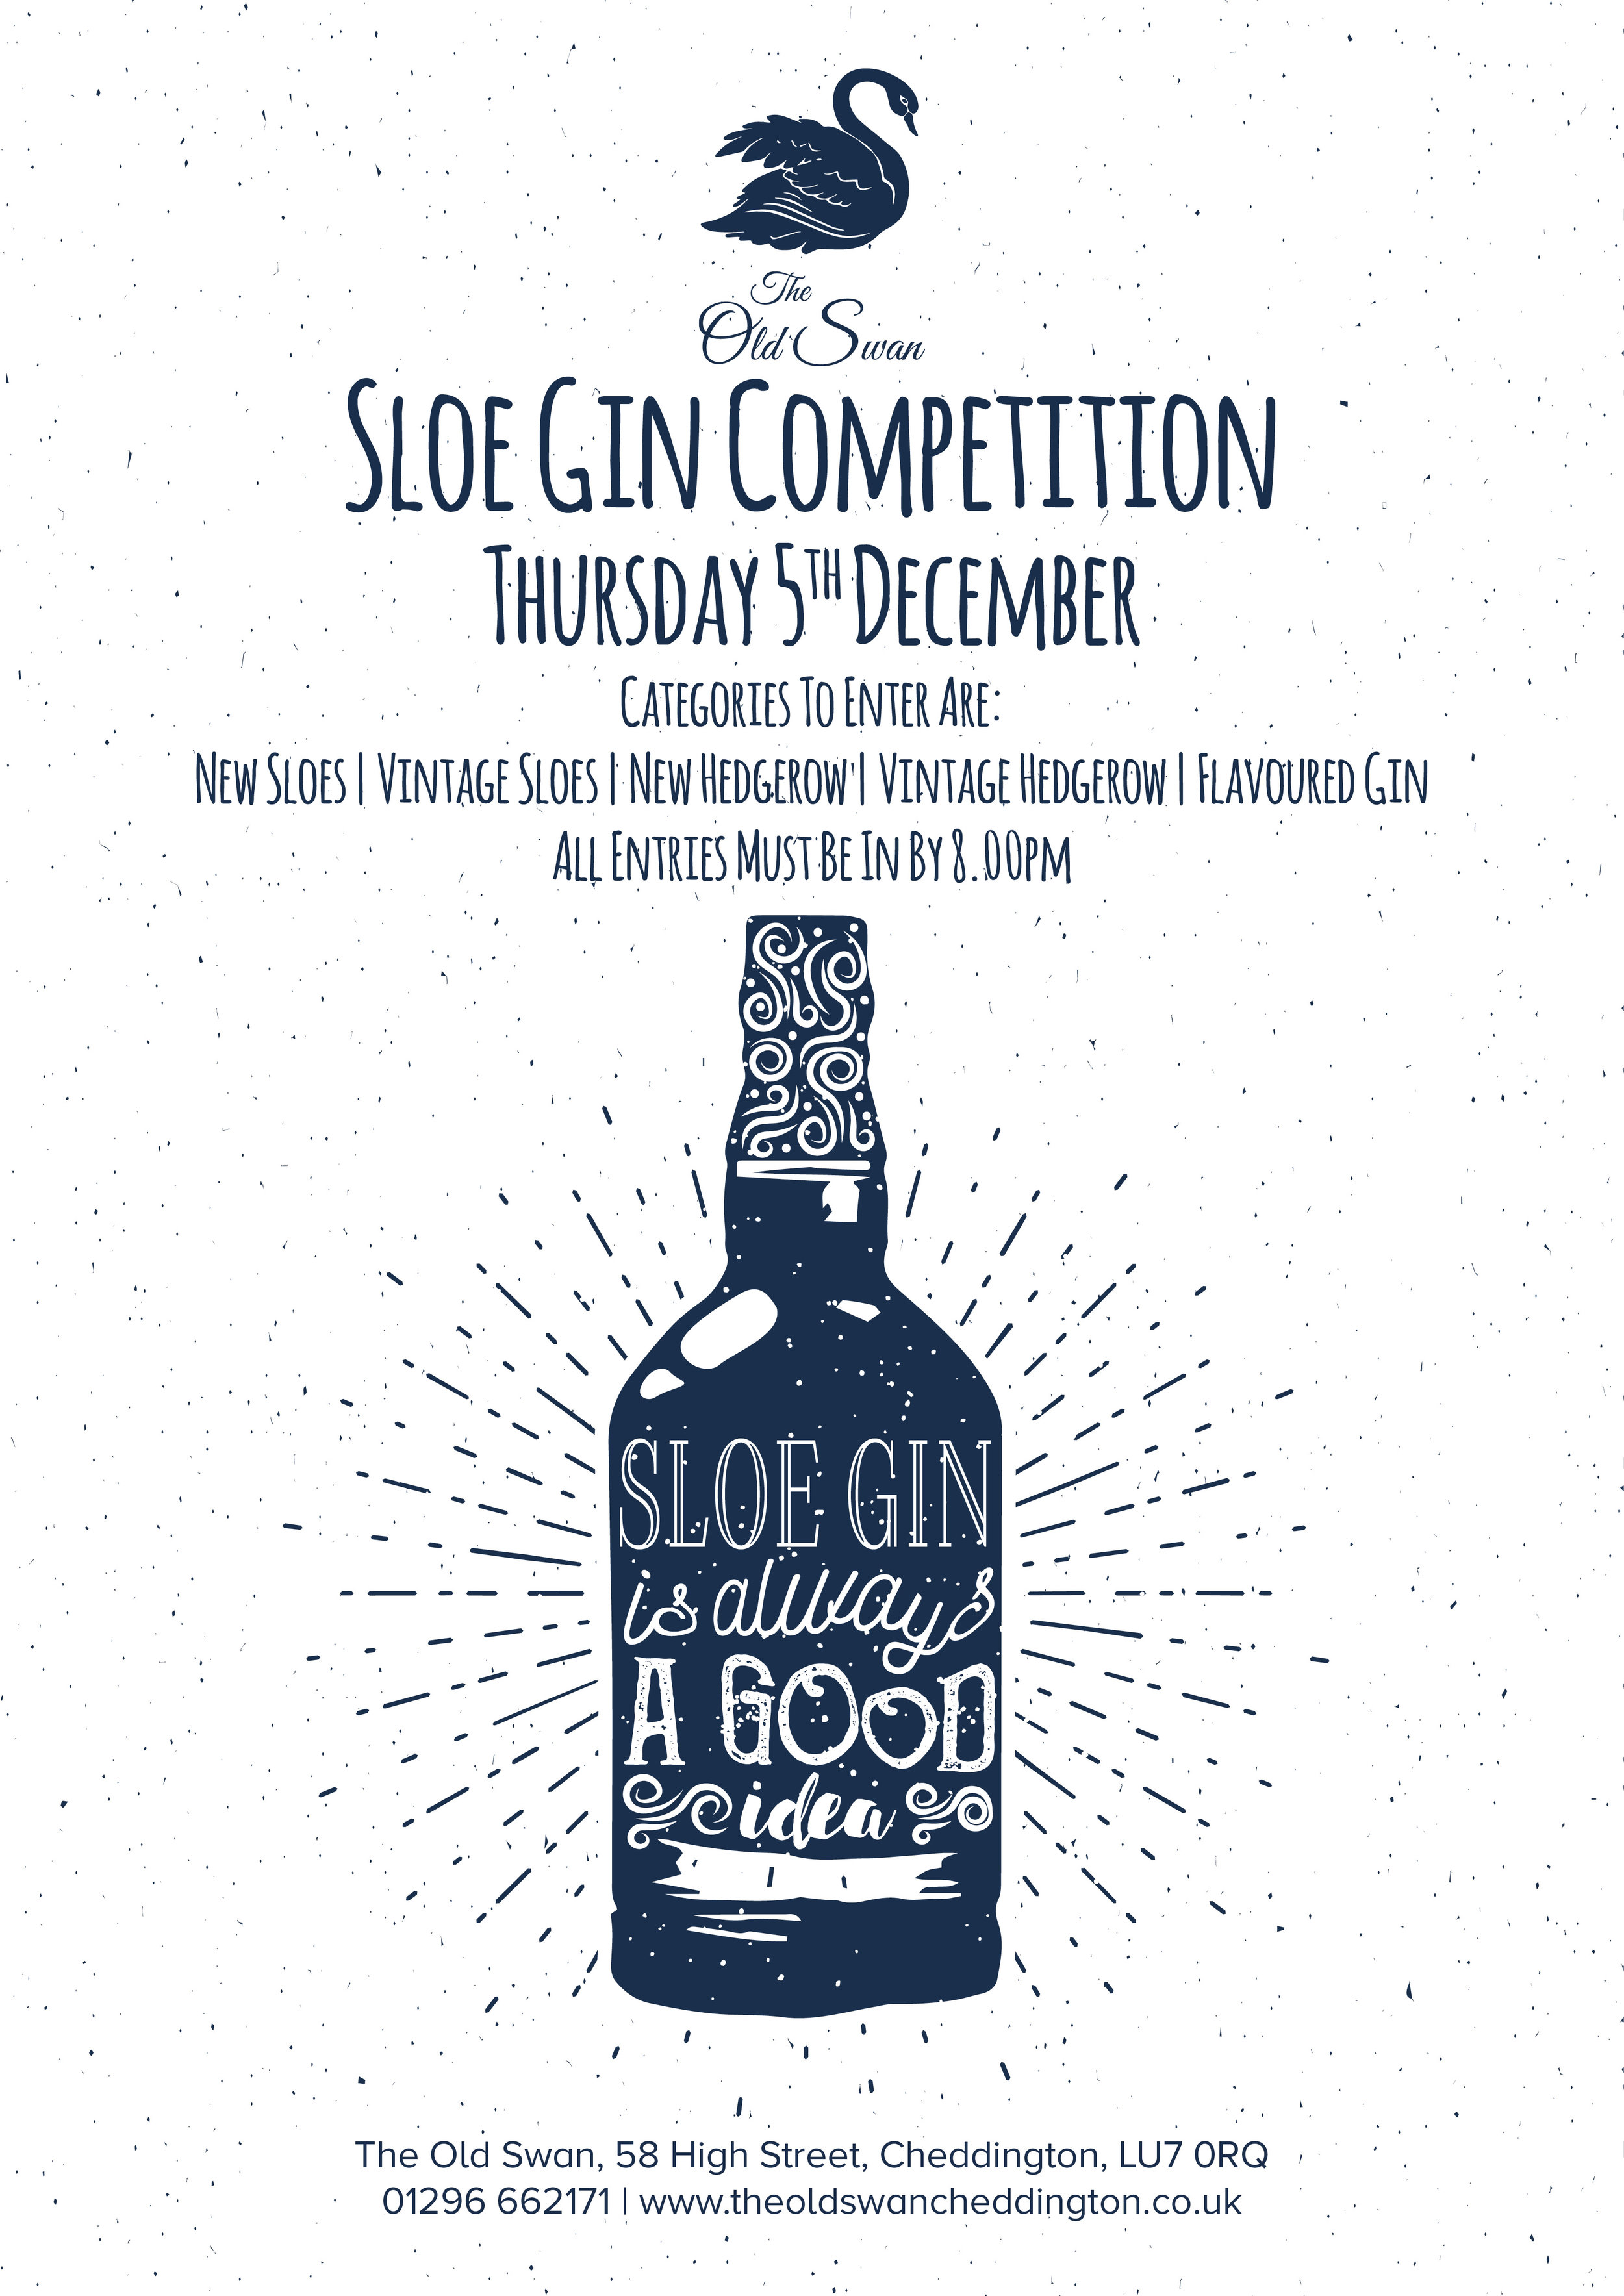 The Old Swan Cheddington Sloe Gin Competition